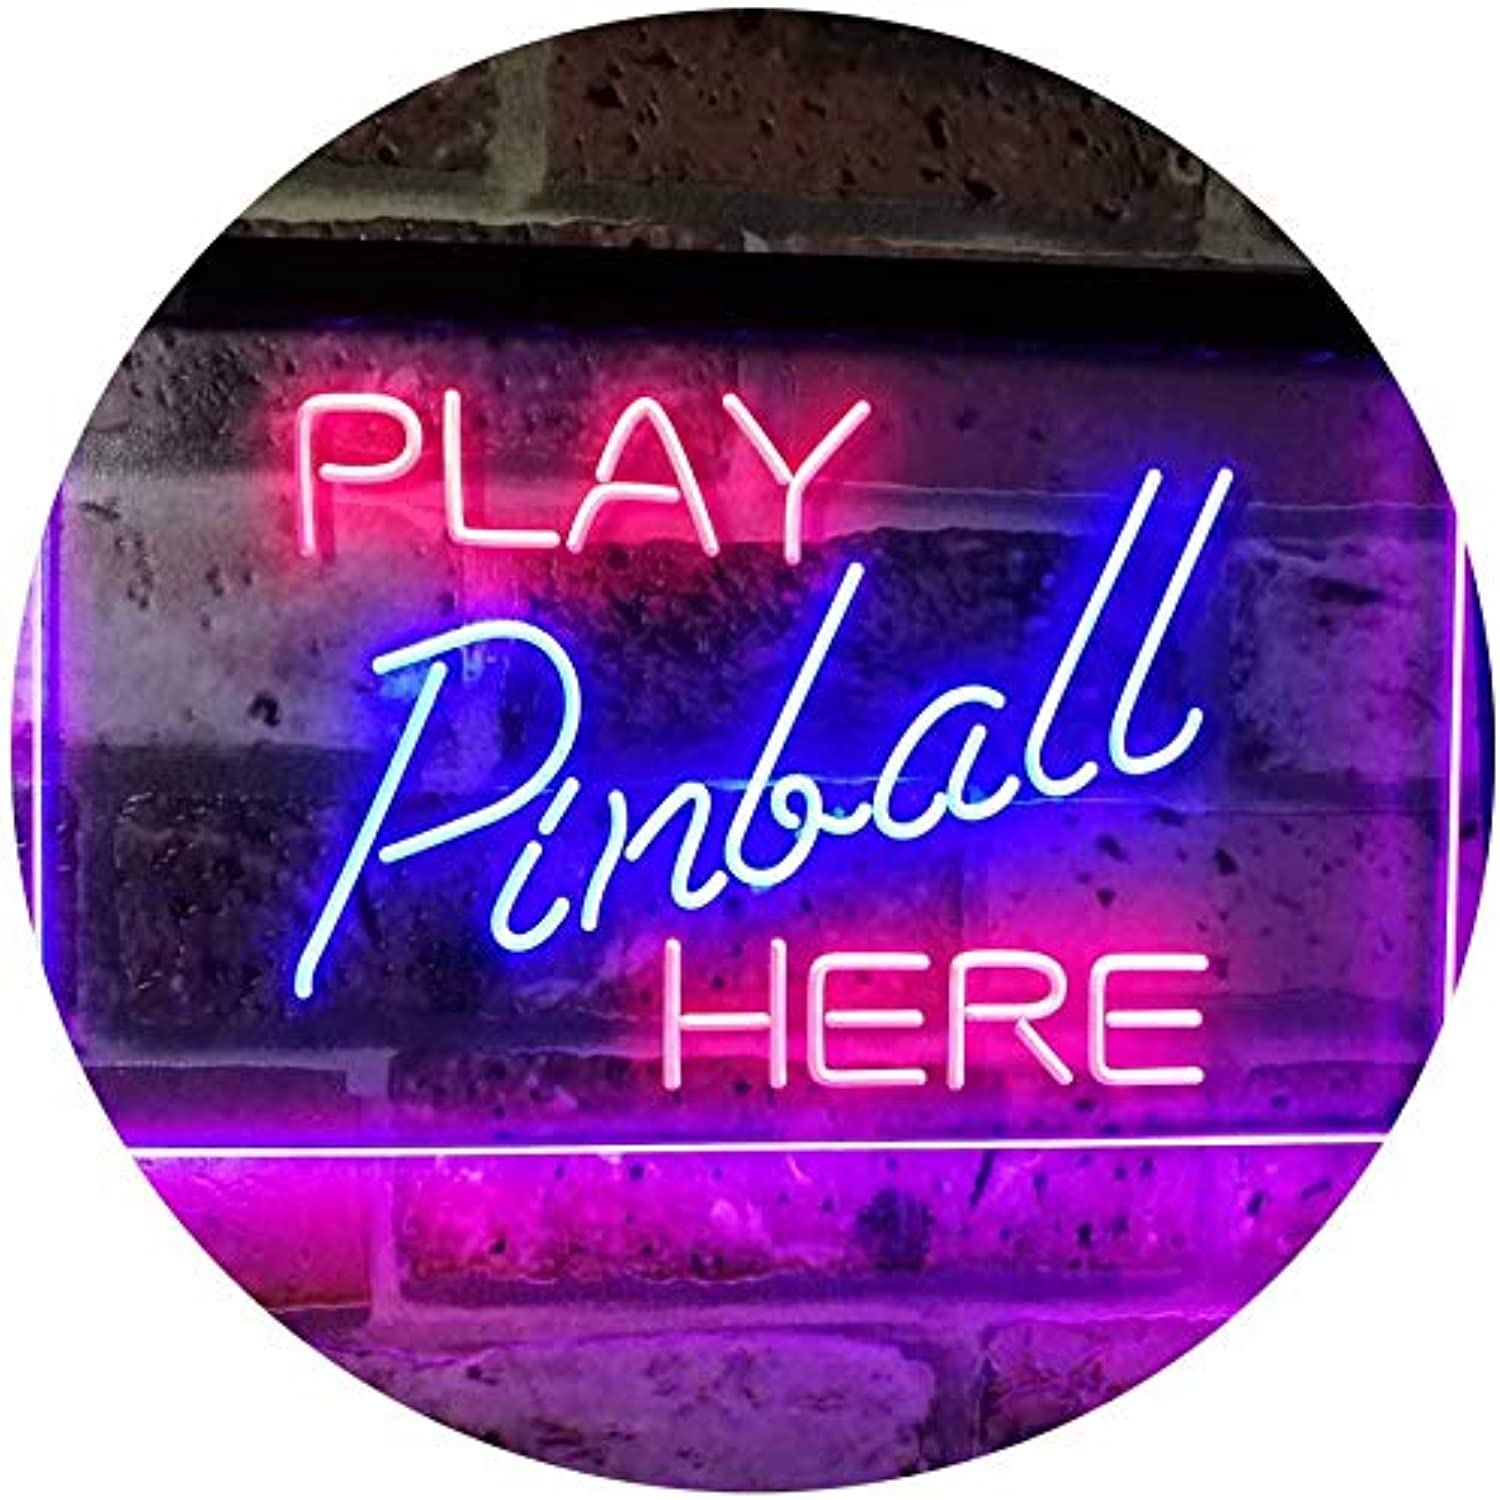 ADVPRO Pinball Room Play Here Display Game Man Cave Décor Dual Farbe LED Barlicht Neonlicht Lichtwerbung Neon Sign rot & Blau 400mm x 300mm st6s43-i2619-rb